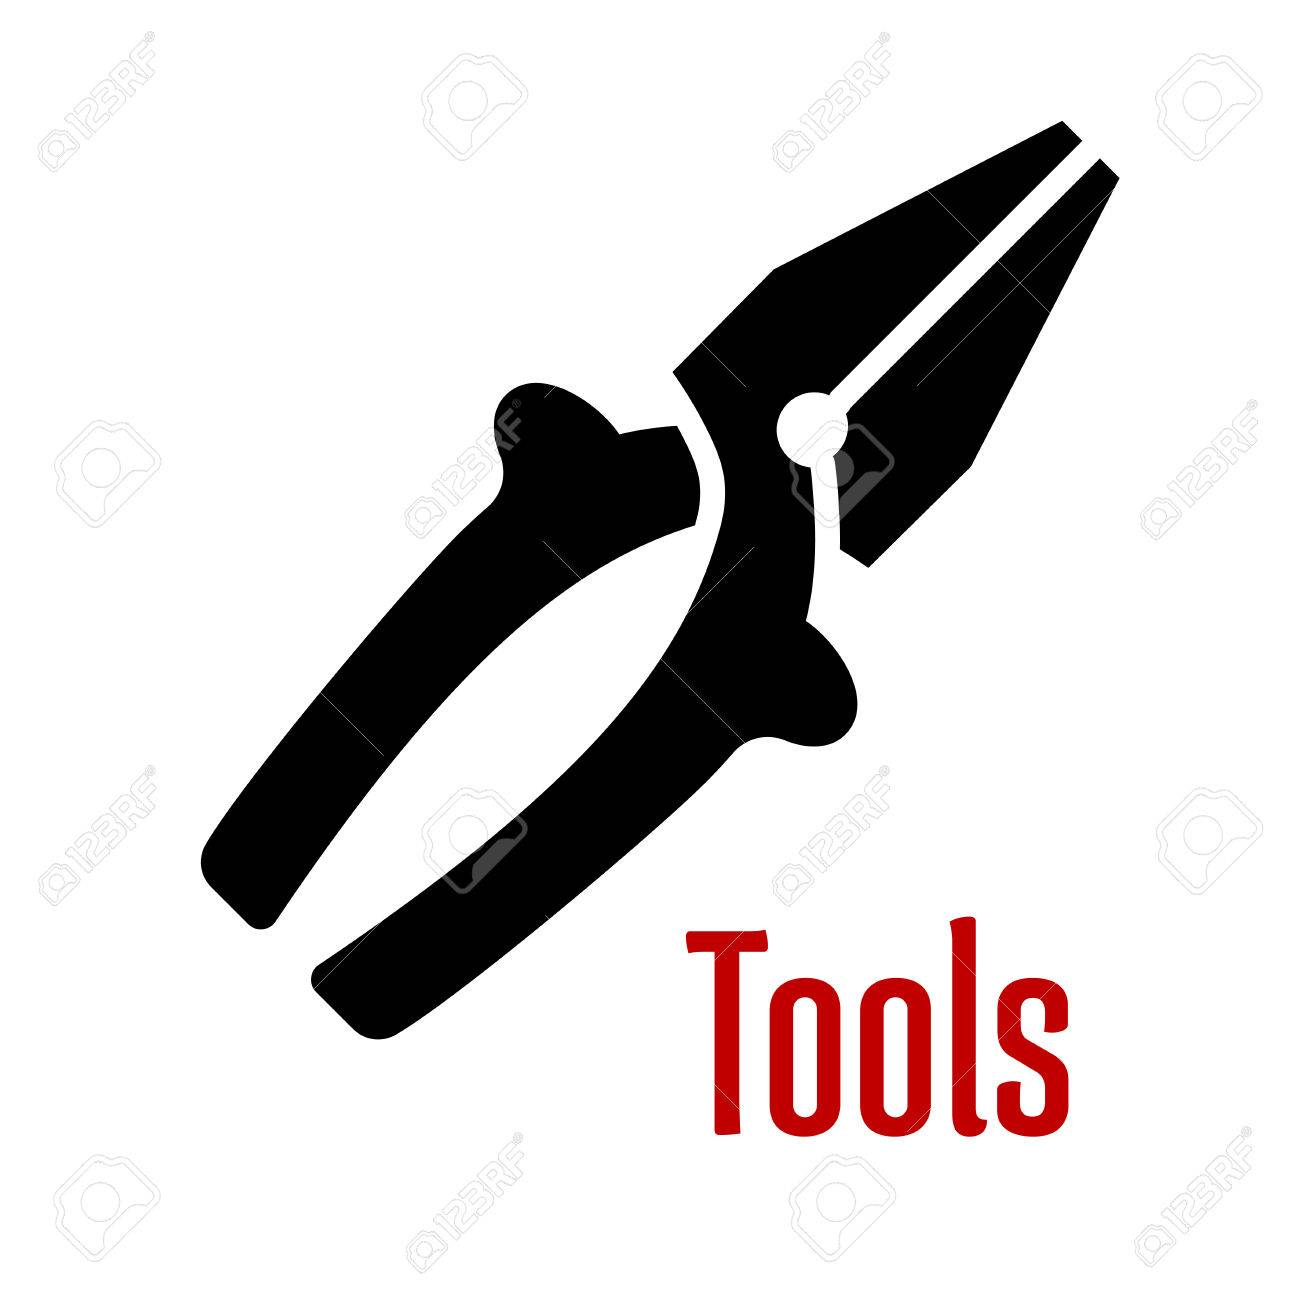 Pliers tool black silhouette with insulation grips and wire cutter